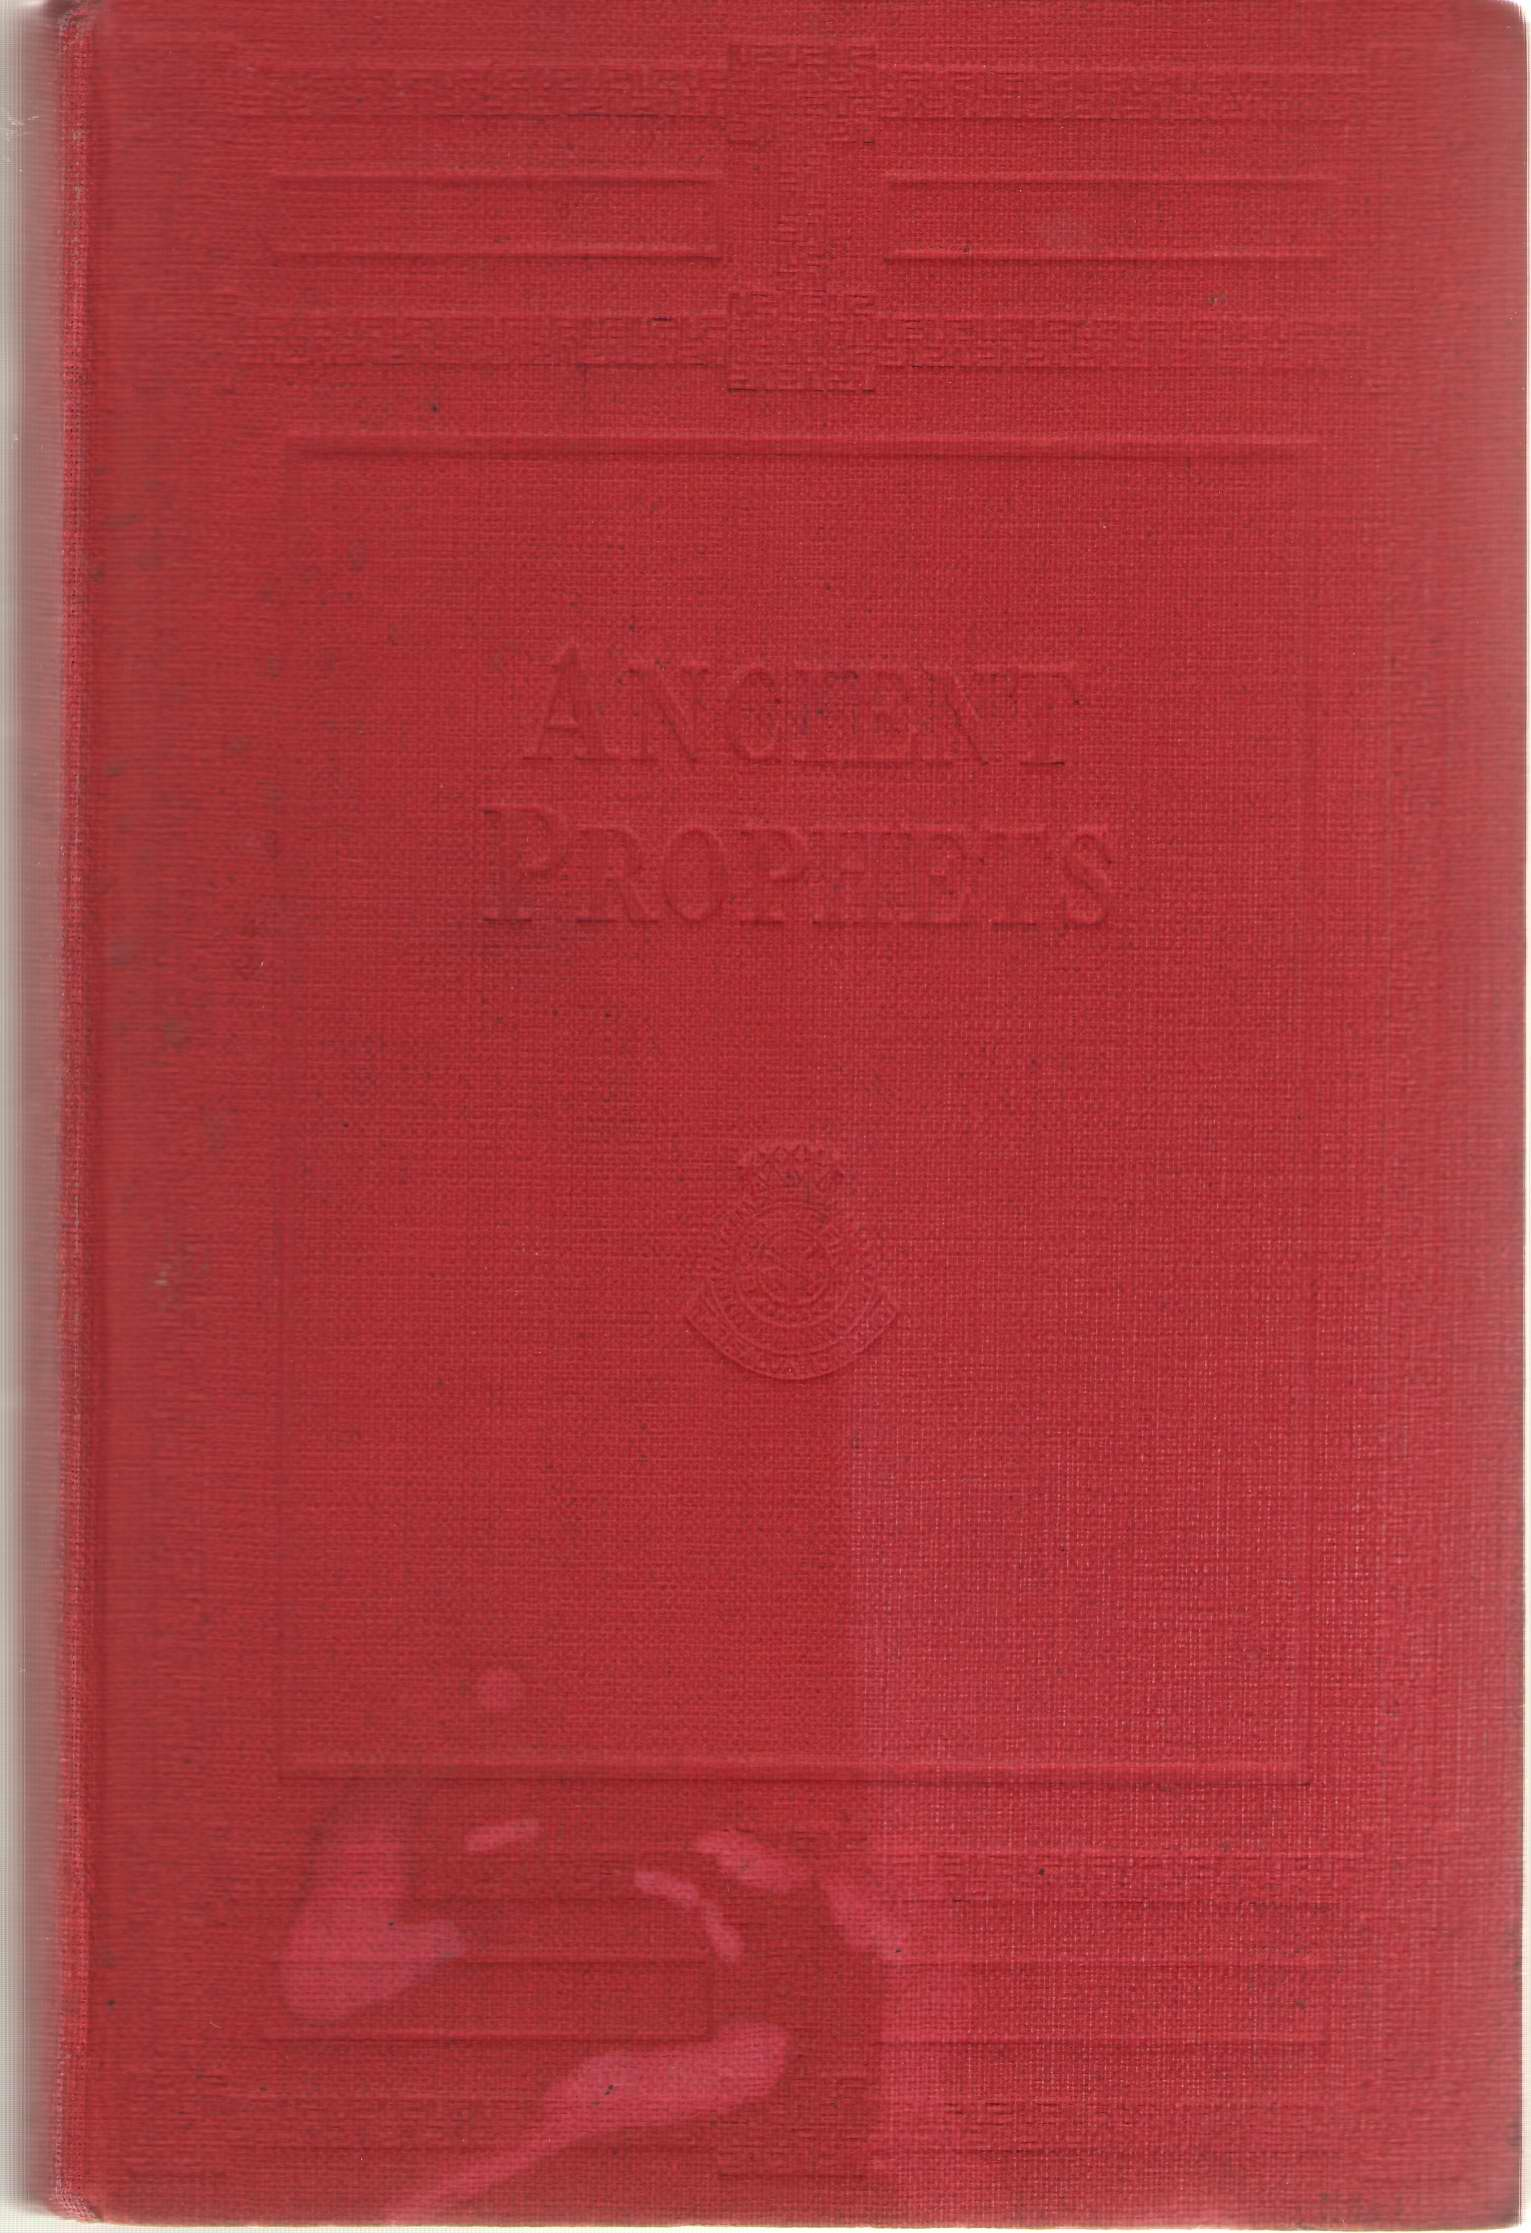 Ancient Prophets With a Series of Occasional Papers on Modern Problems, Brengle, Samuel